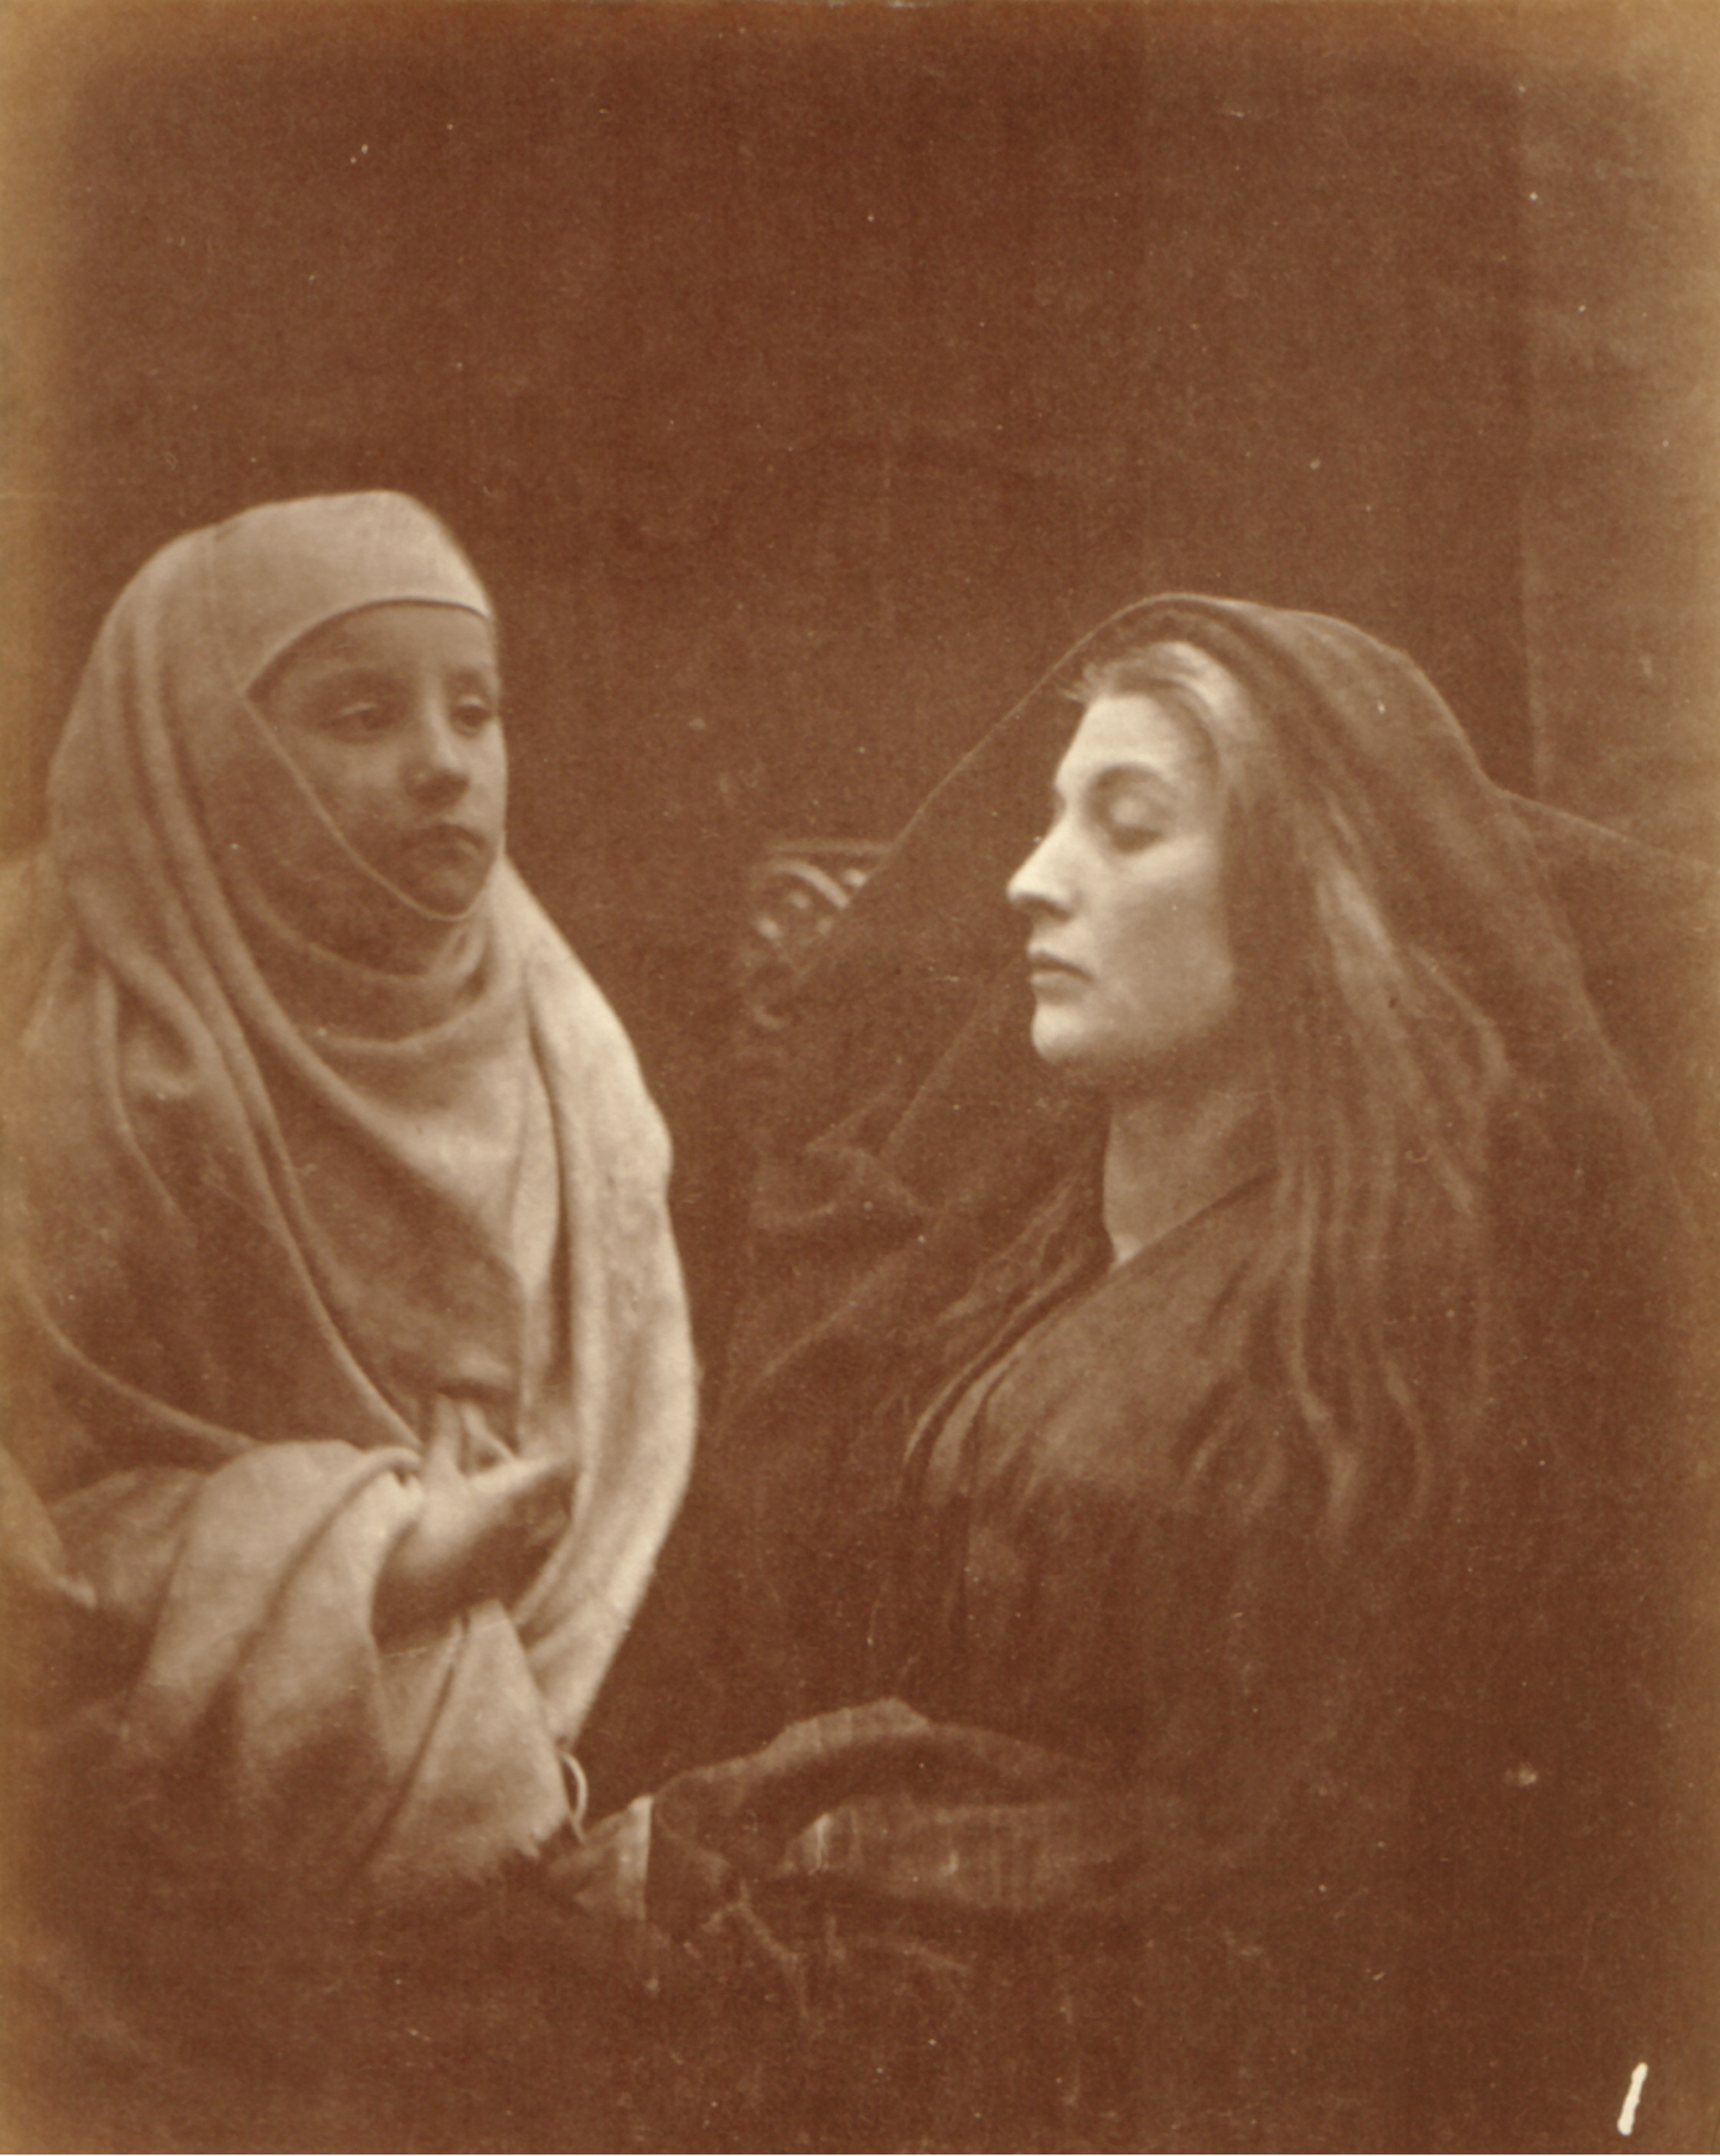 Julia Margaret Cameron, 'The Little Novice and the Queen', plate XI from Idylls of the King, albument print 1874